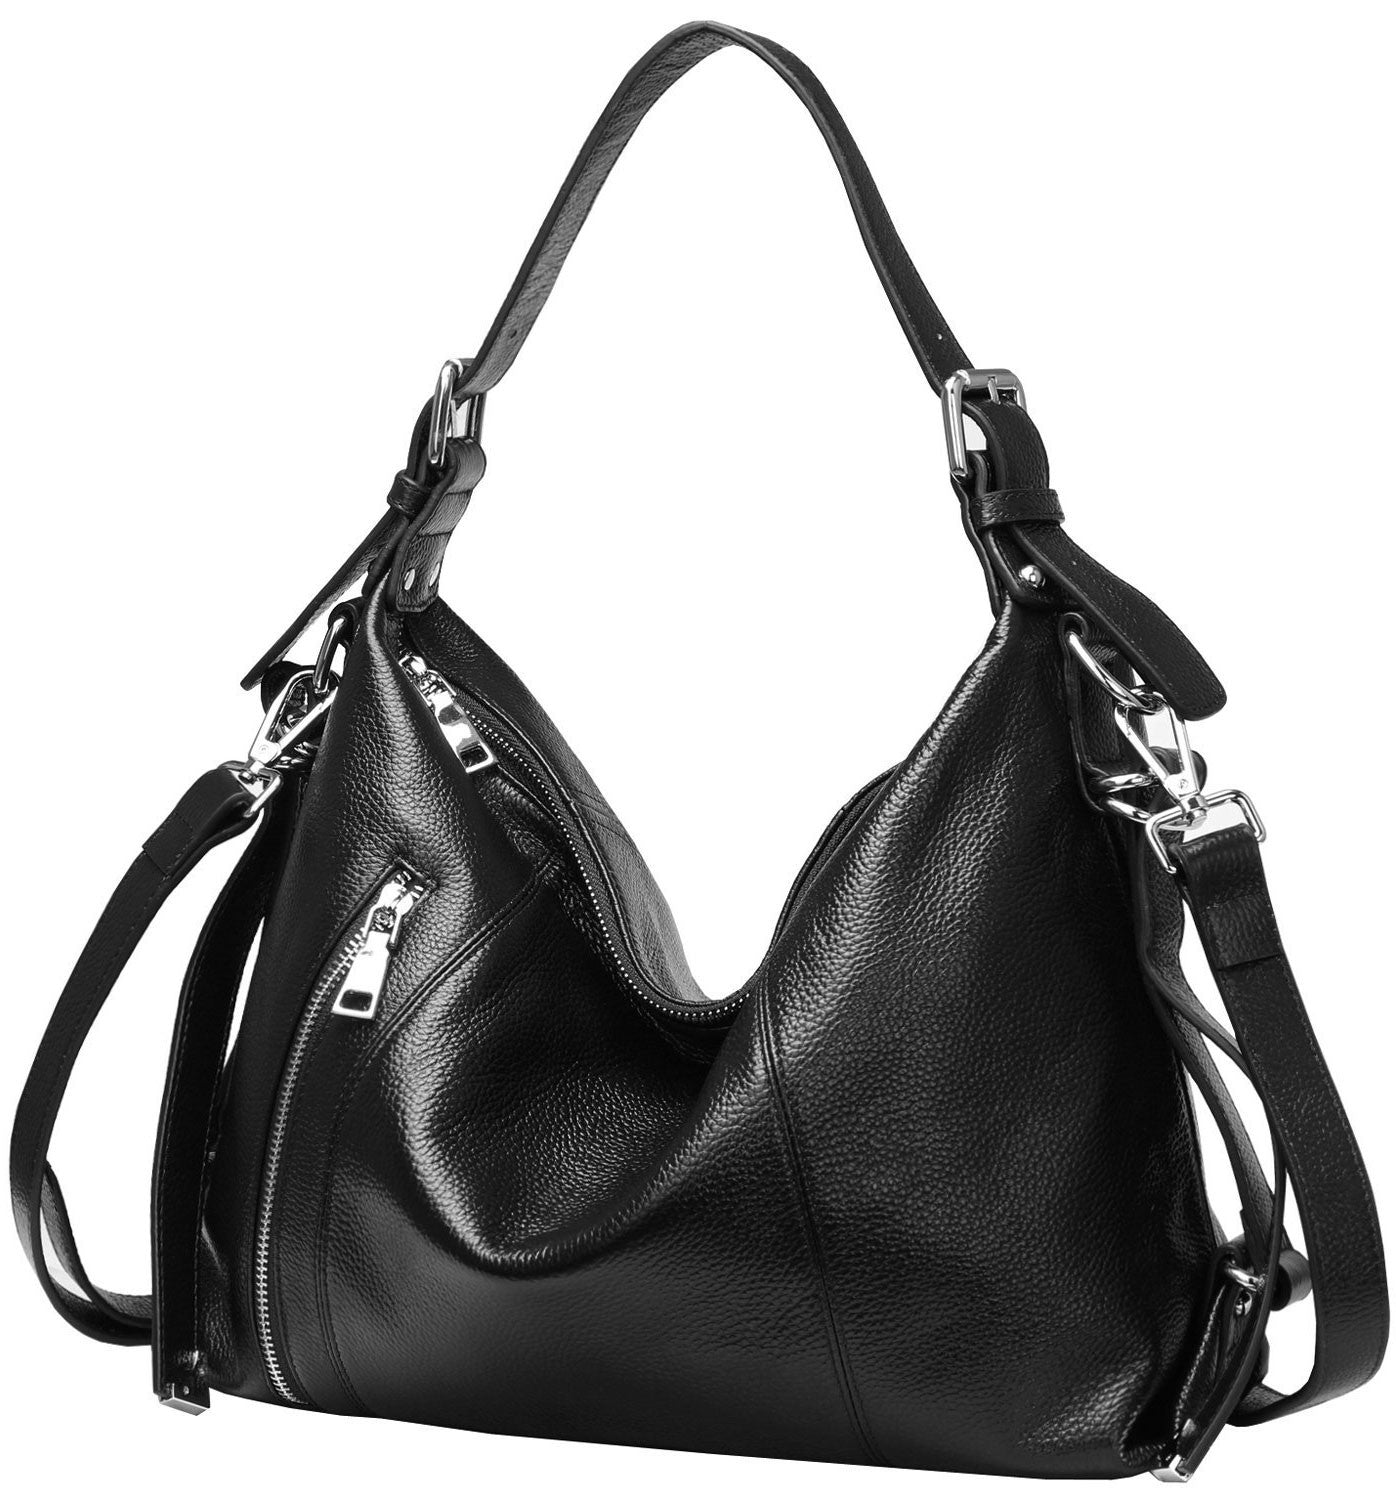 Women's leather crossbody bags with over the shoulder top handle. Black